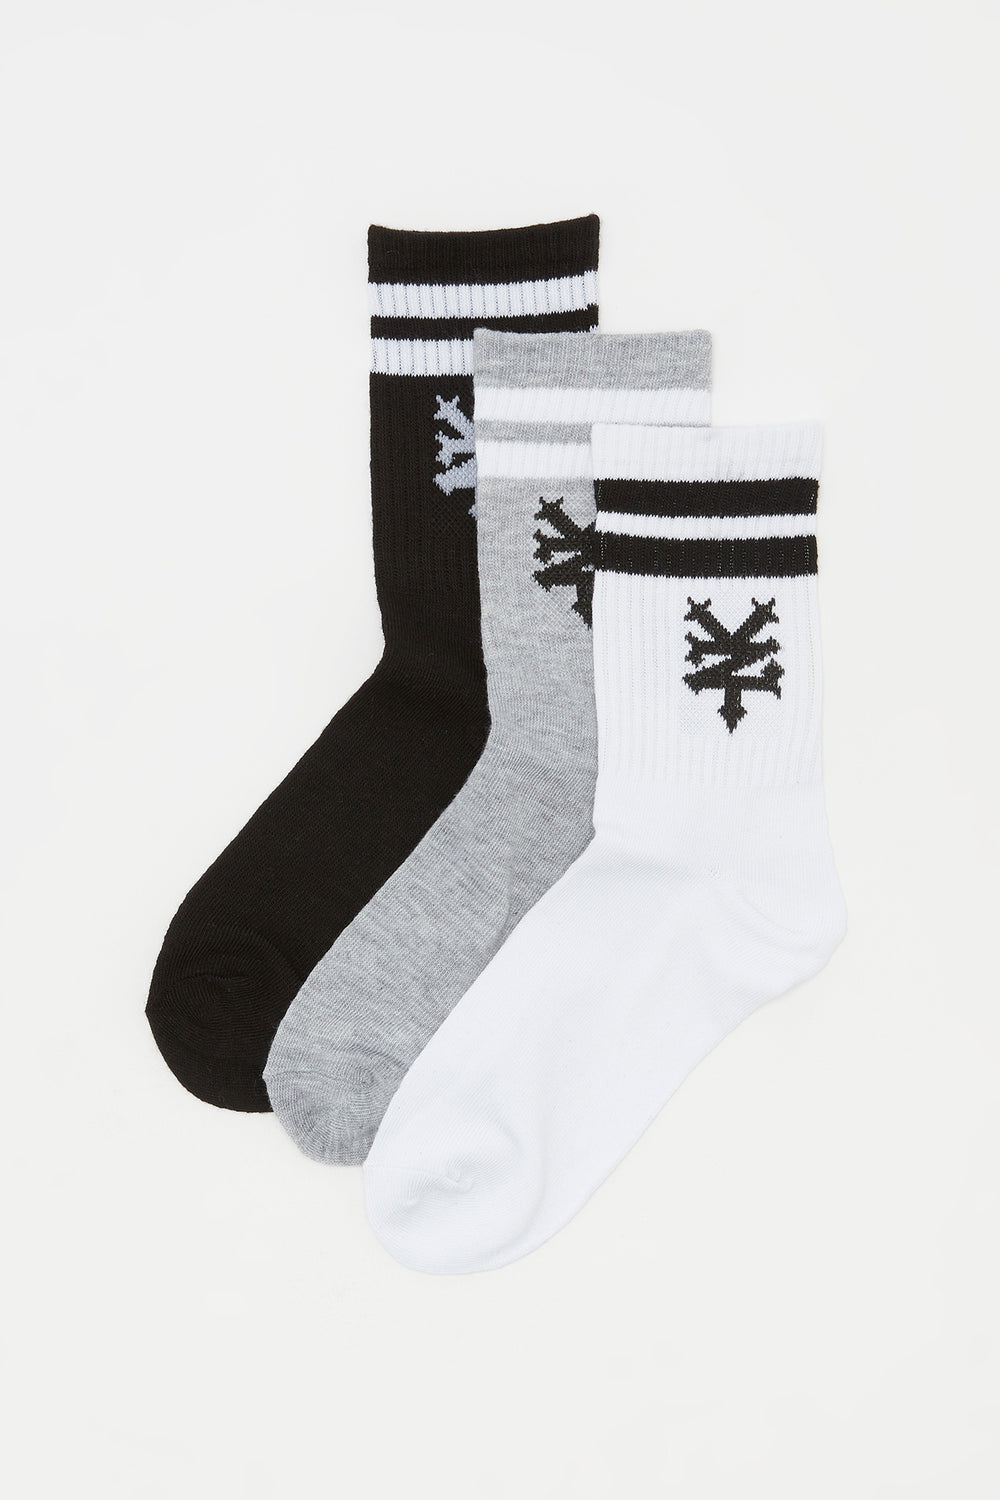 Zoo York Boys Logo and Stripes Crew Socks (3 Pairs) Black with White